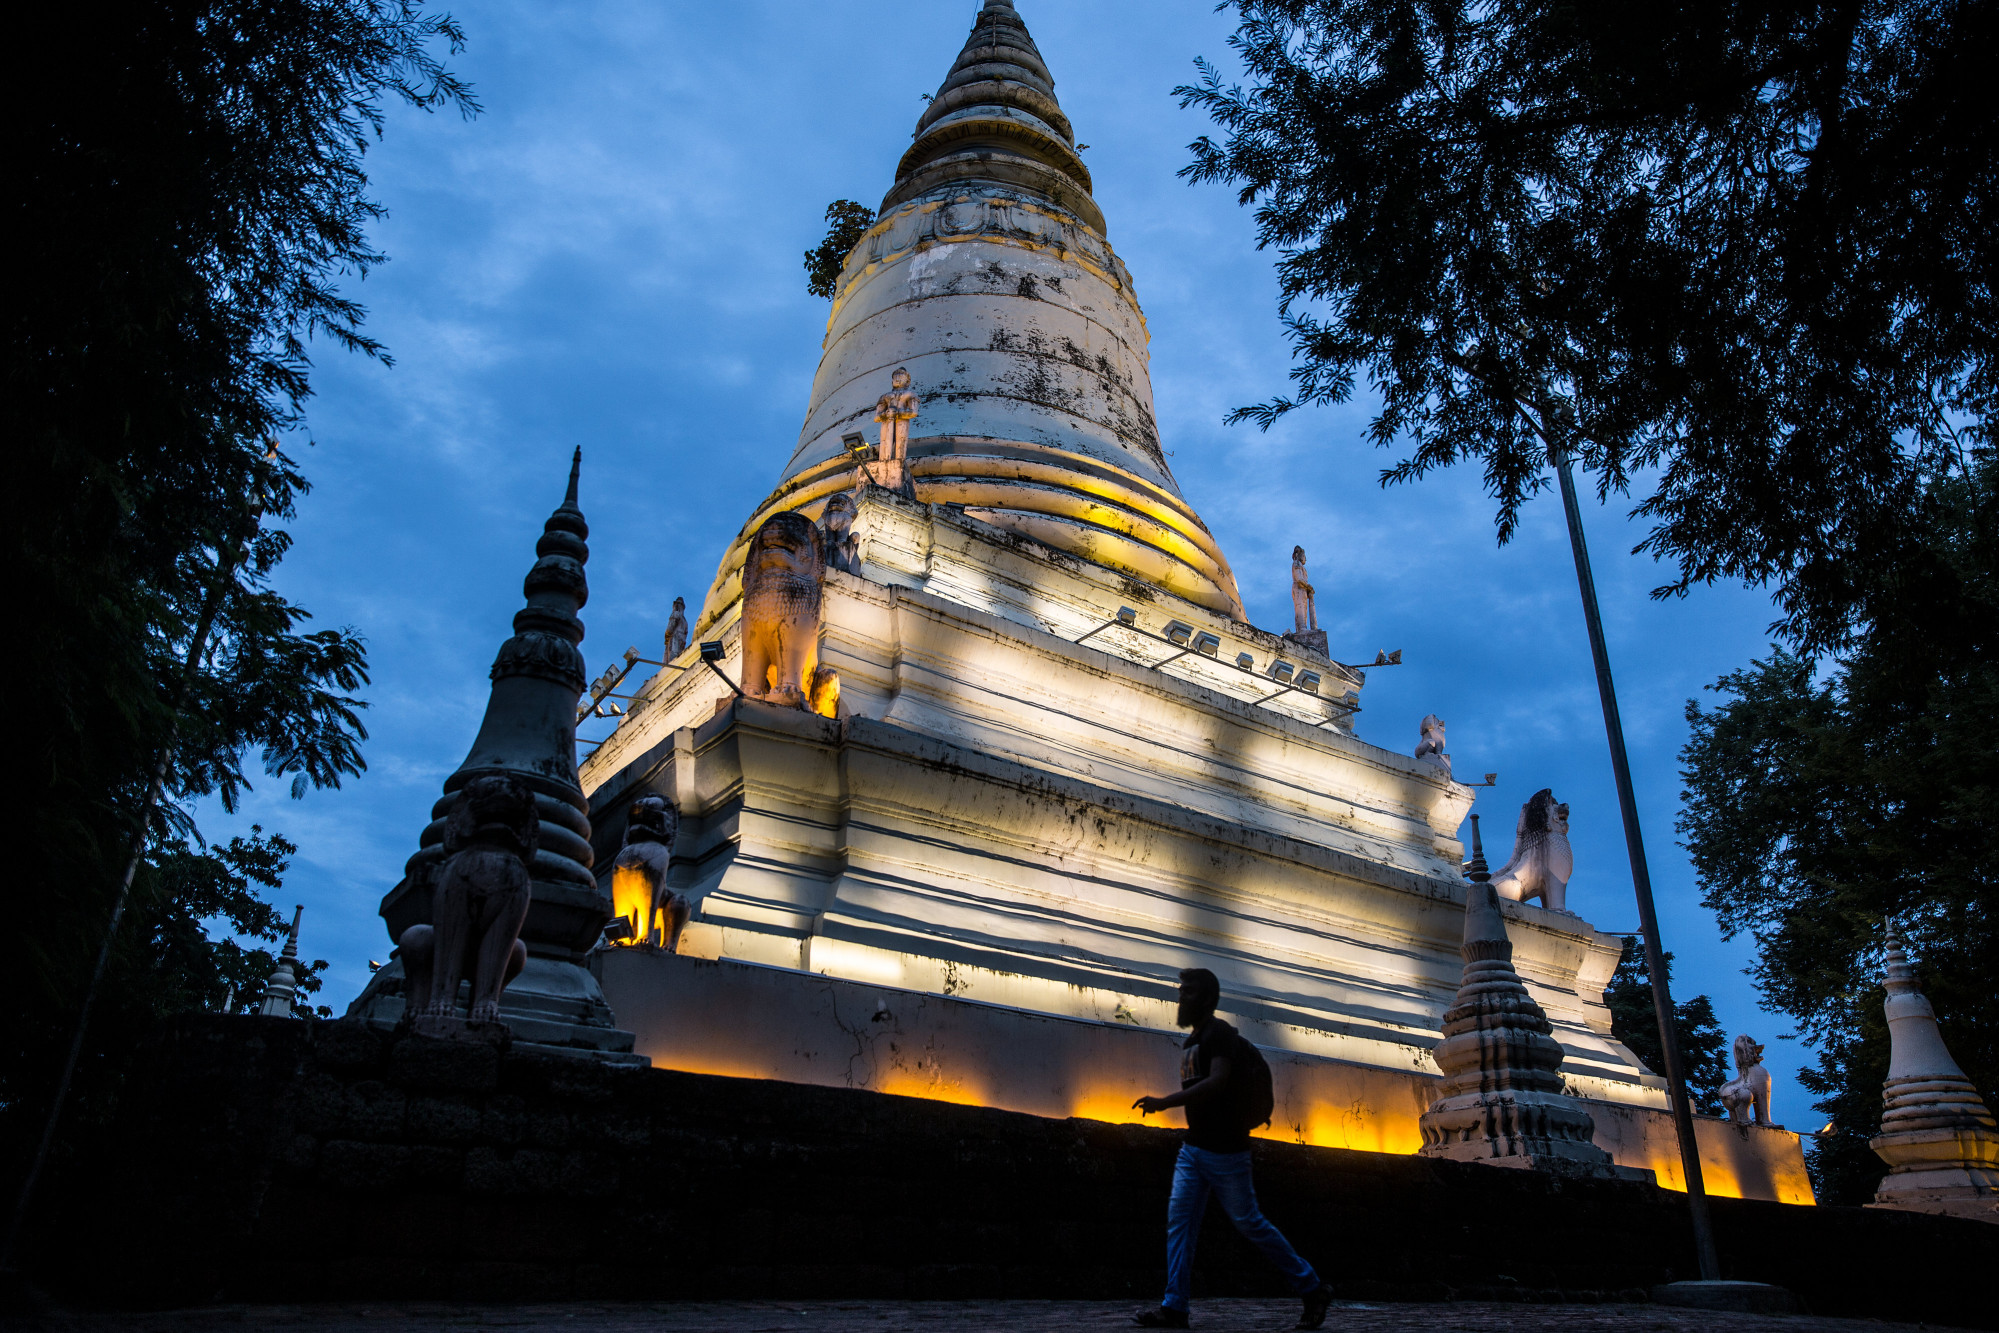 A pedestrian walks past the Wat Phnom temple illuminated at dusk in Phnom Penh, Cambodia